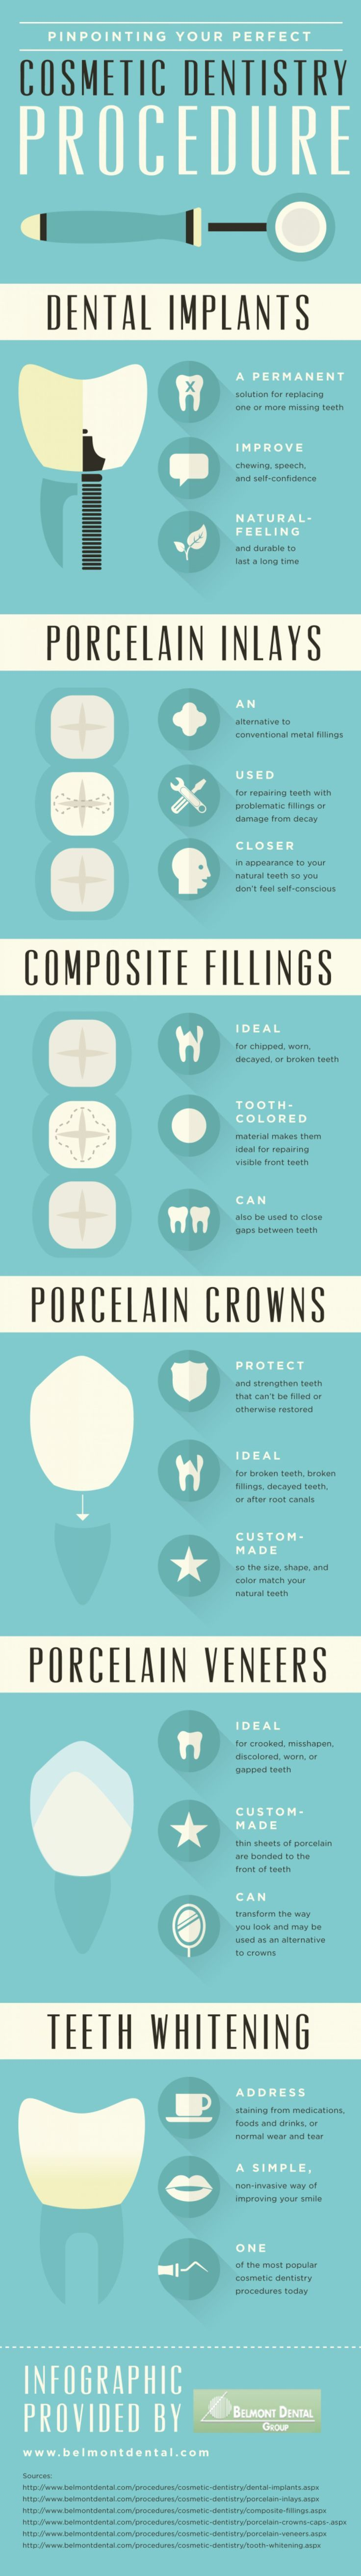 Pinpointing Your Perfect Cosmetic Dentistry Procedure Infographic